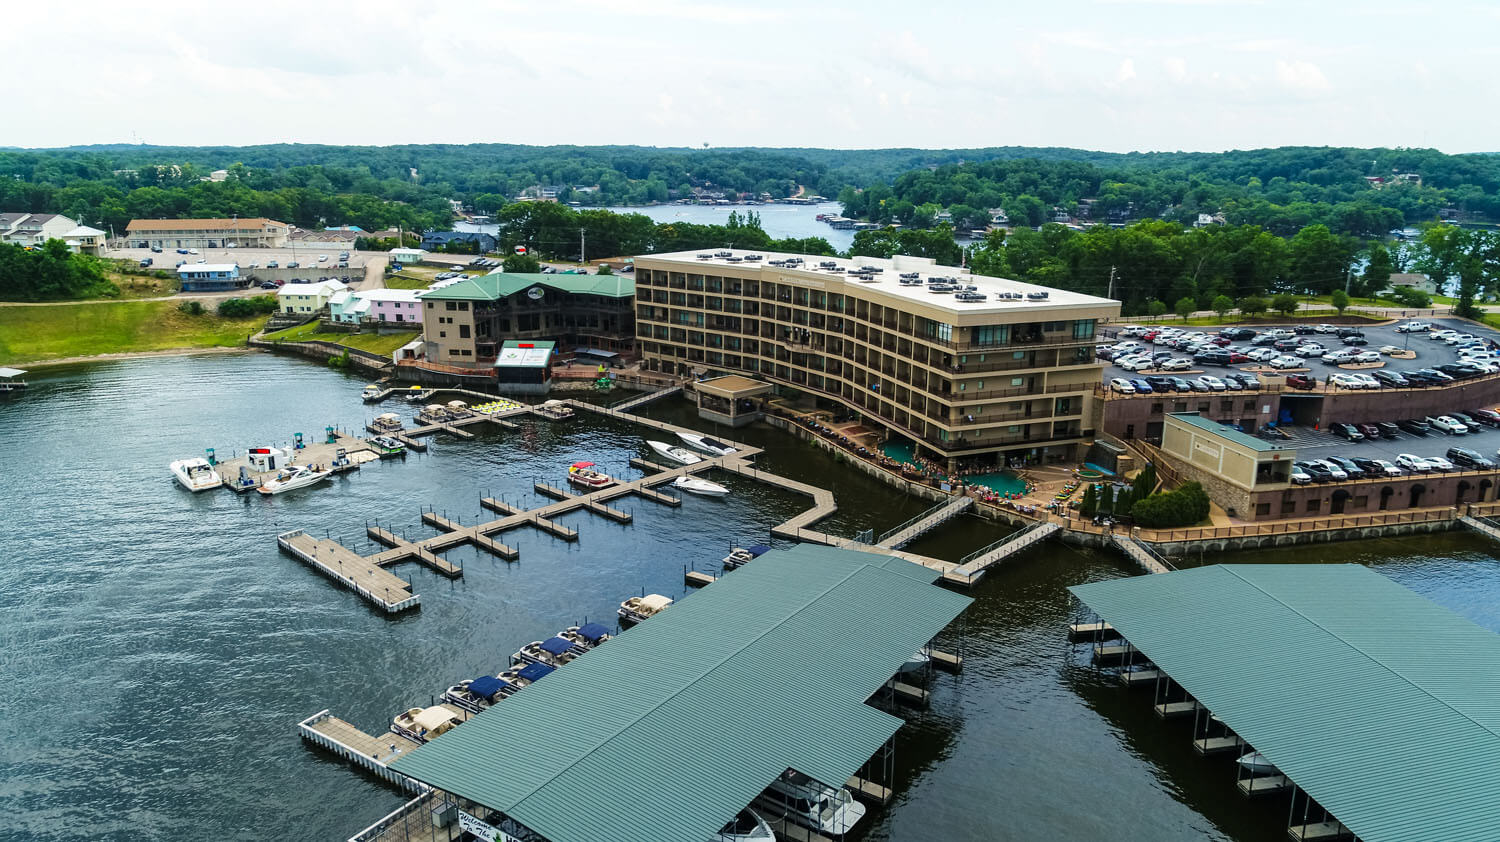 Aerial view showing docks and resort from the lake of the ozarks, camden on the lake resort